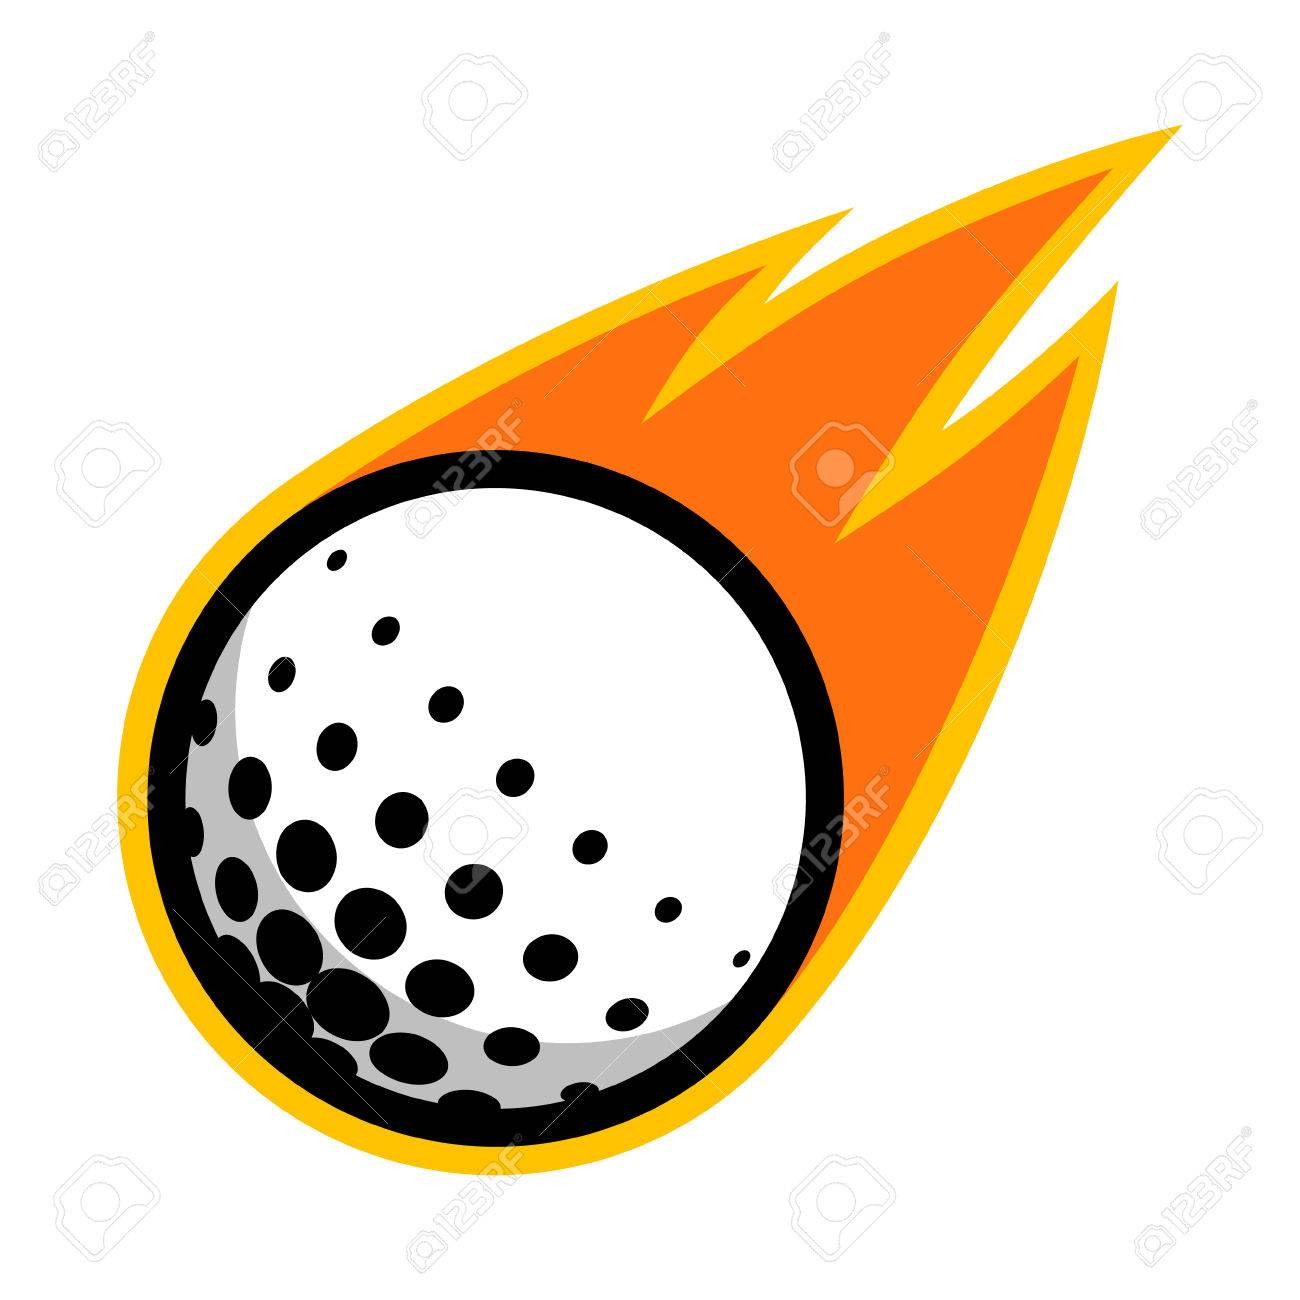 Golf sport ball comet fire tail flying logo.